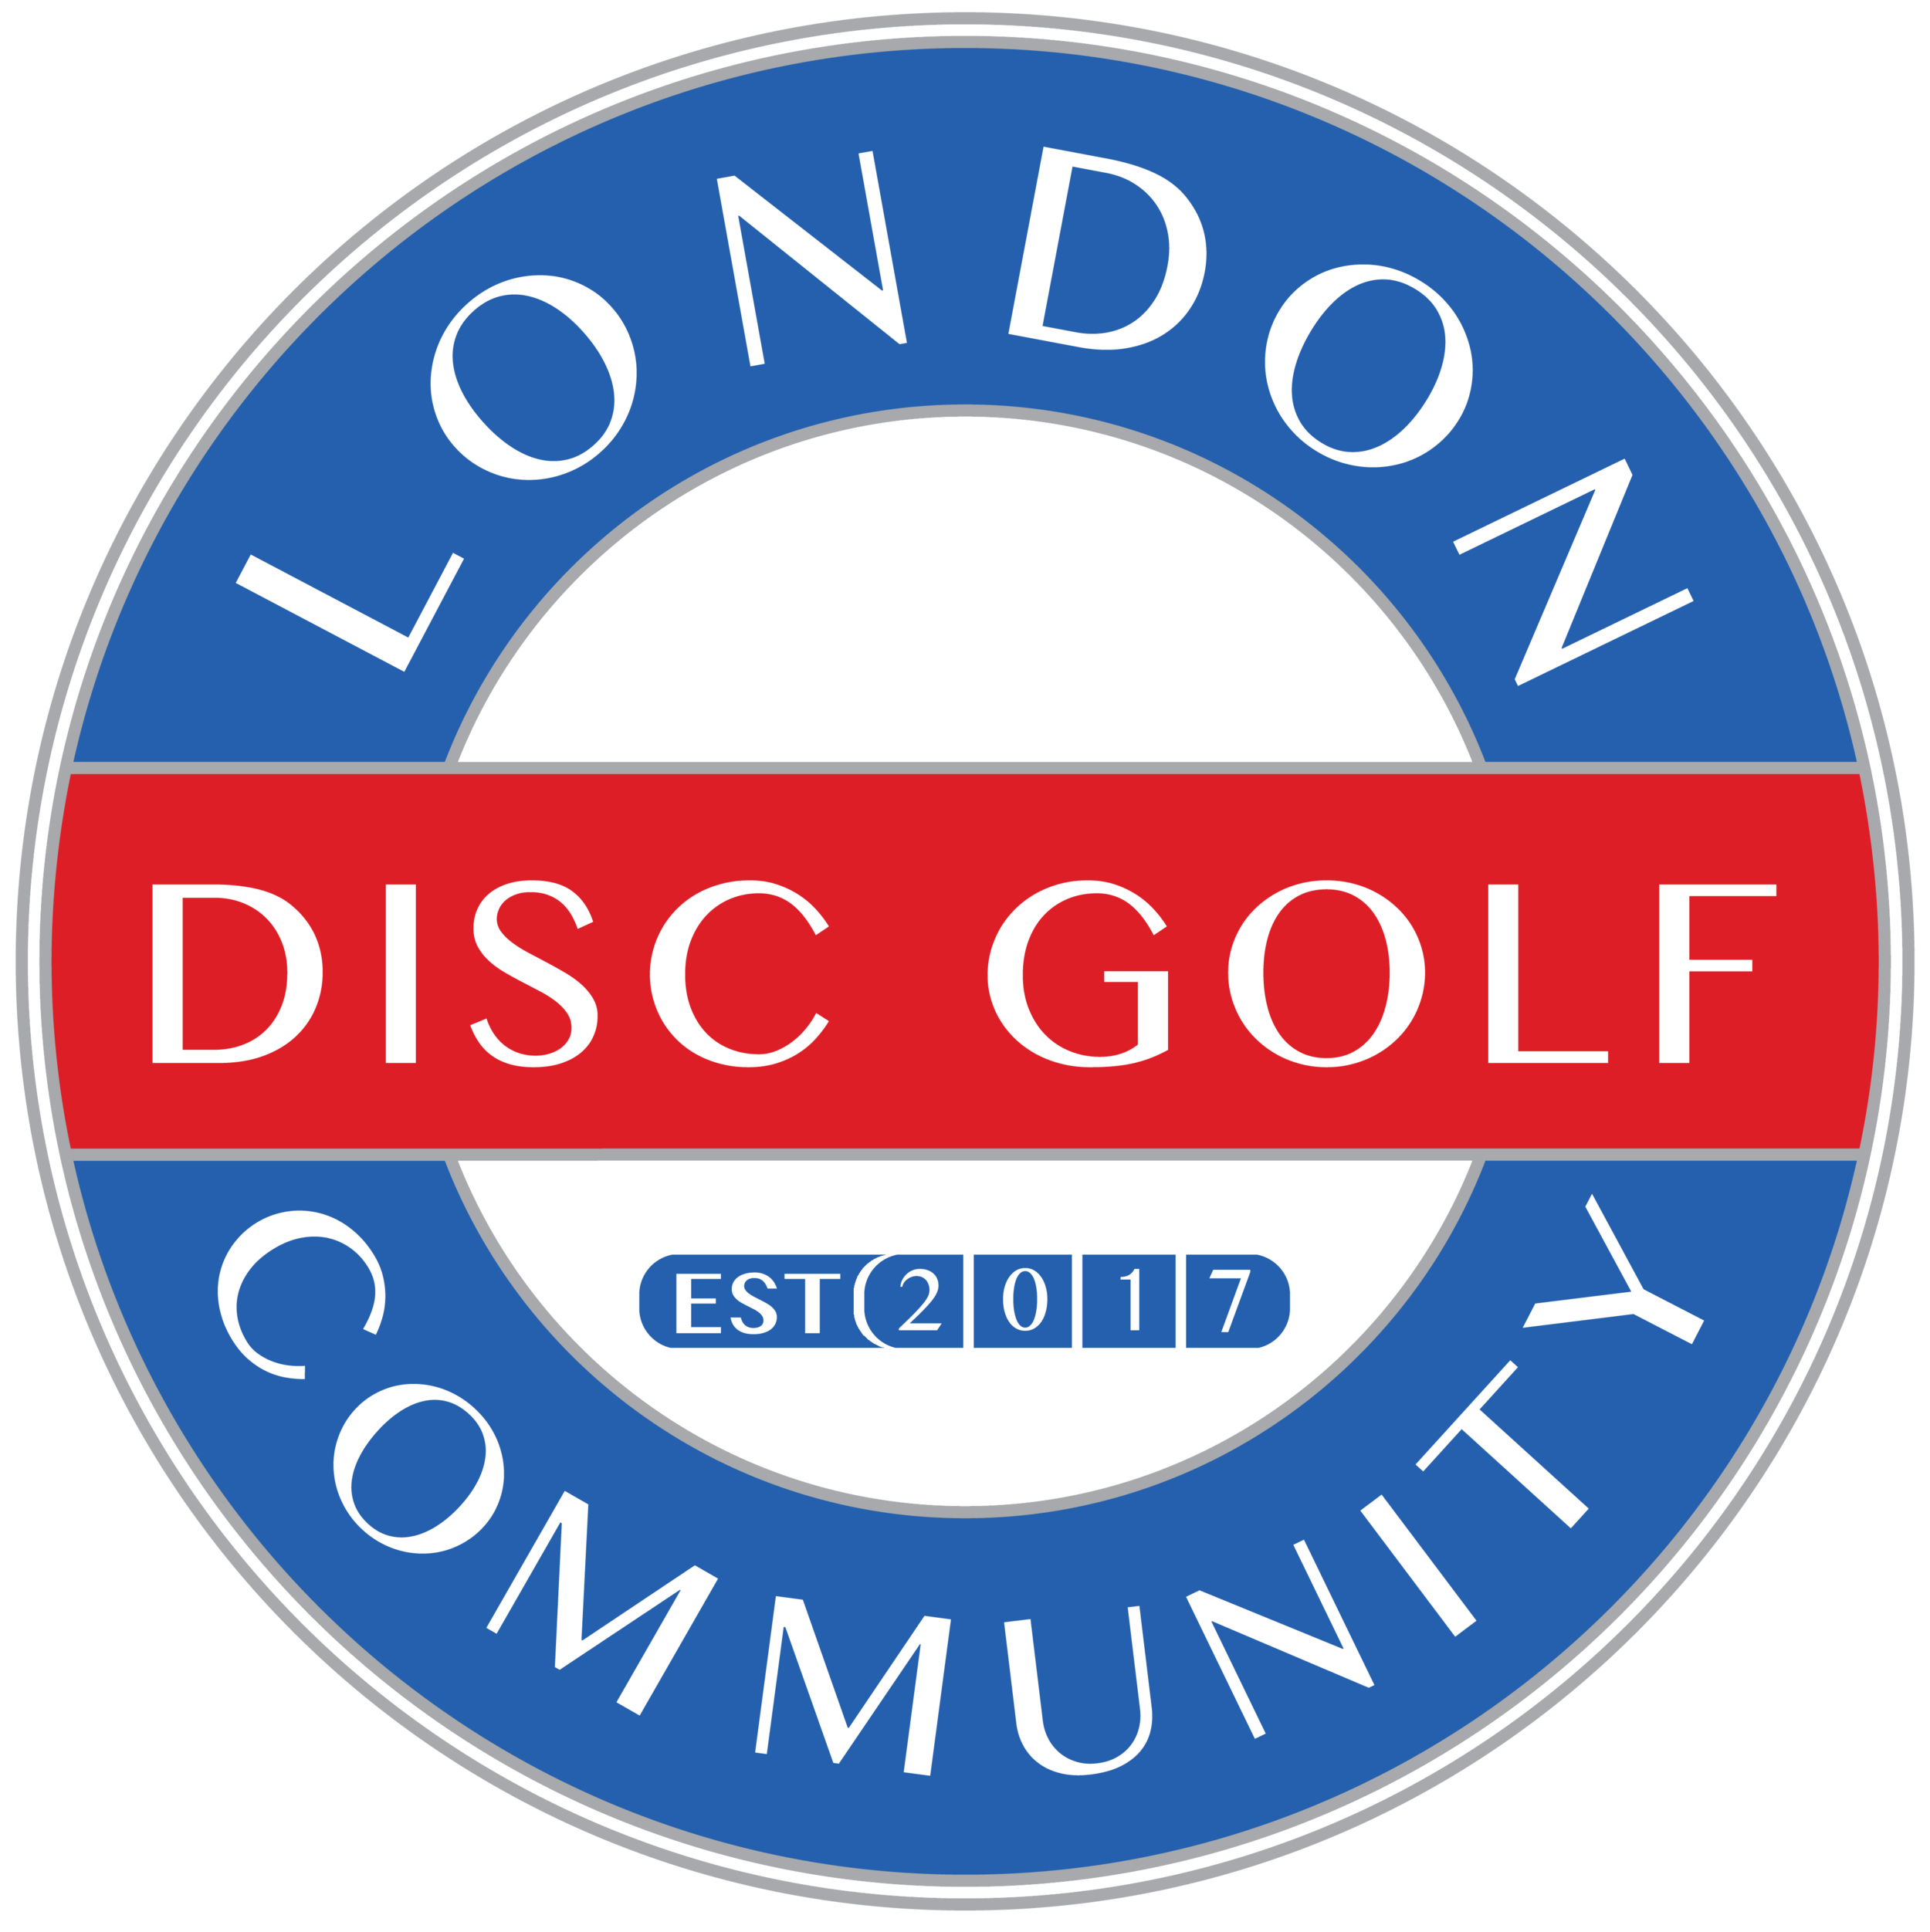 https://www.discgolf.london